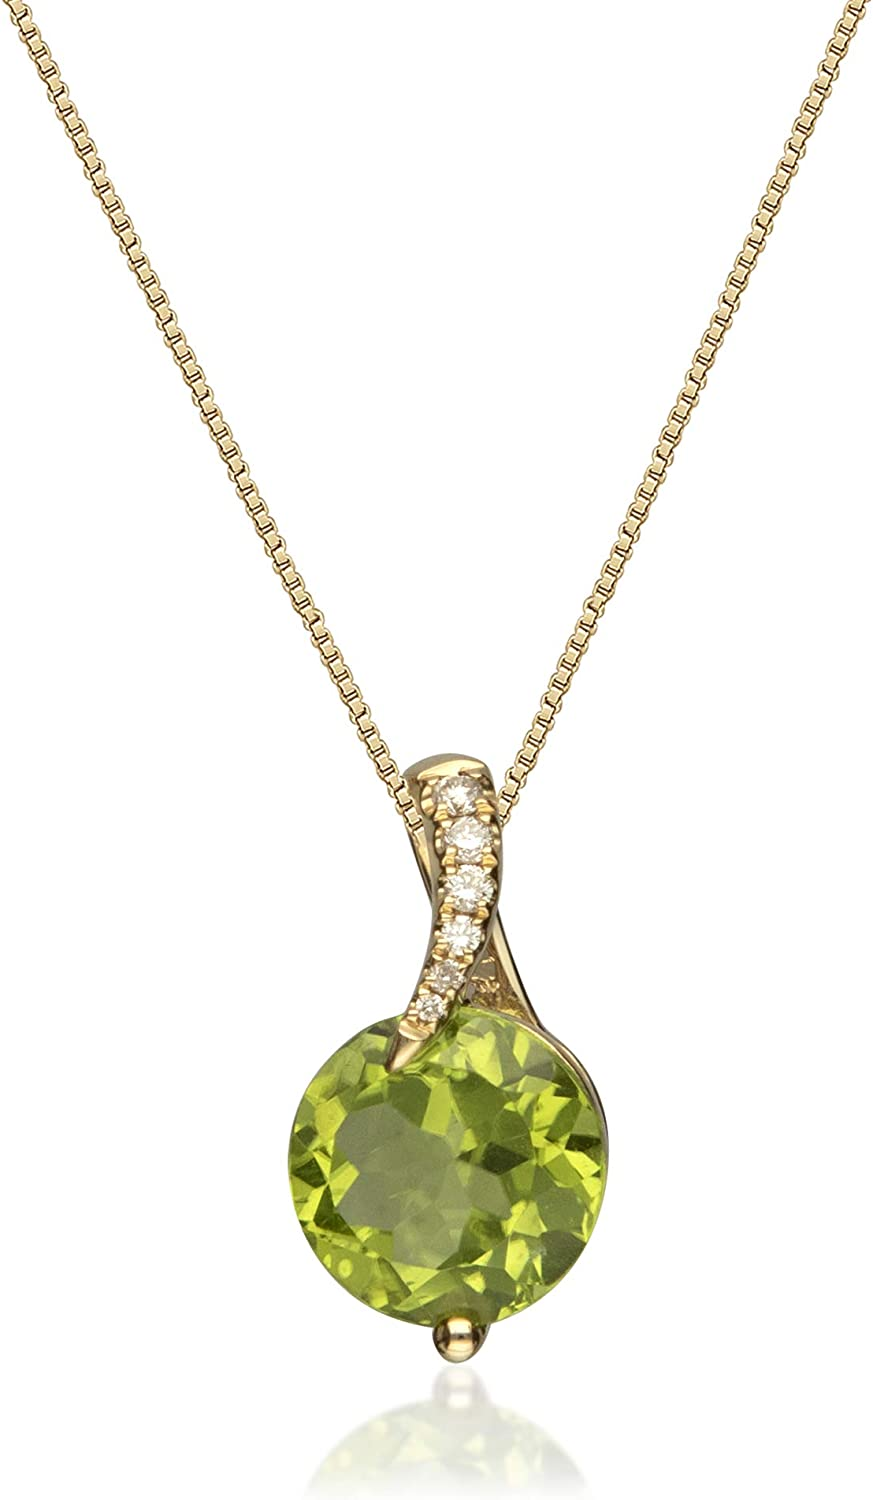 Gin & Grace 14K Yellow Gold Natural Diamond (I1) Pendant Necklace with Genuine Peridot Daily Work Wear Jewelry for Women Gifts for Her